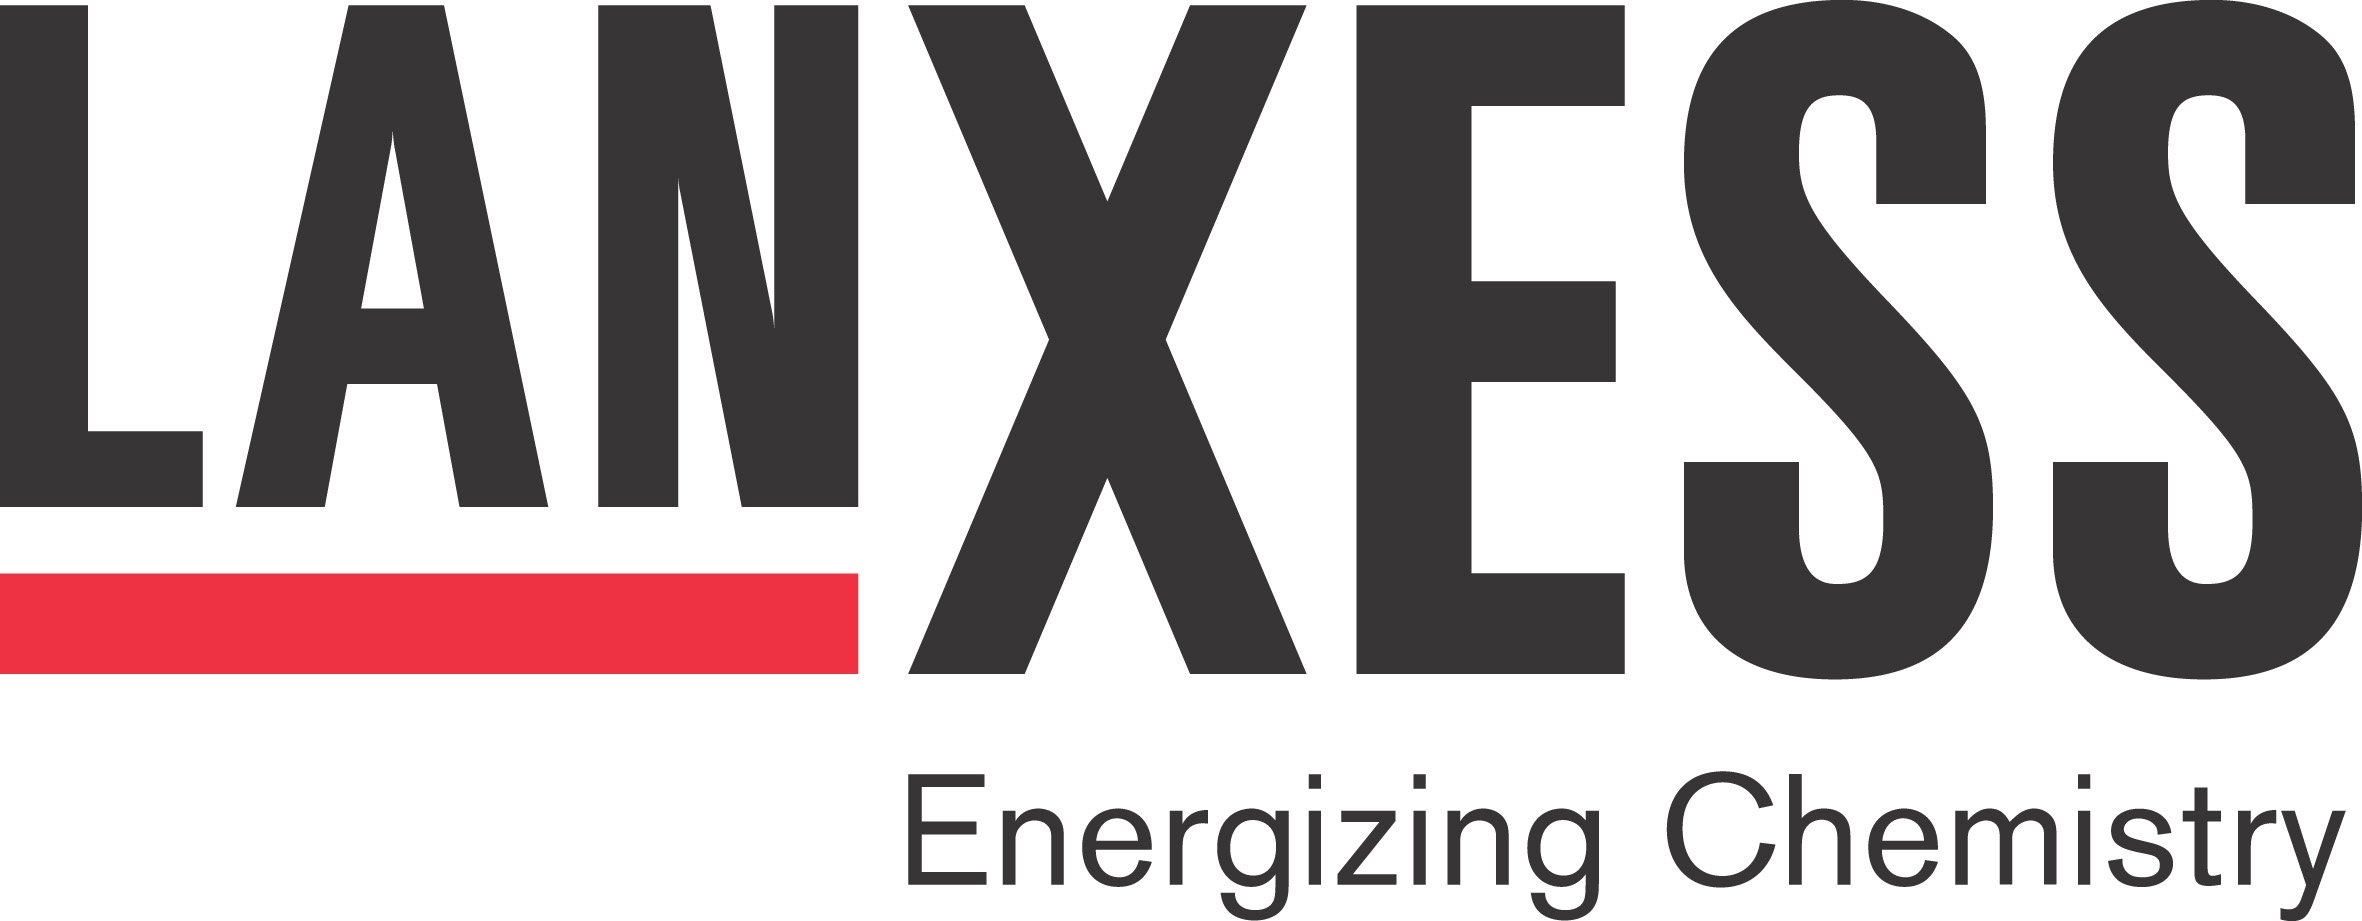 Lanxess Logo (Source: Lanxess)